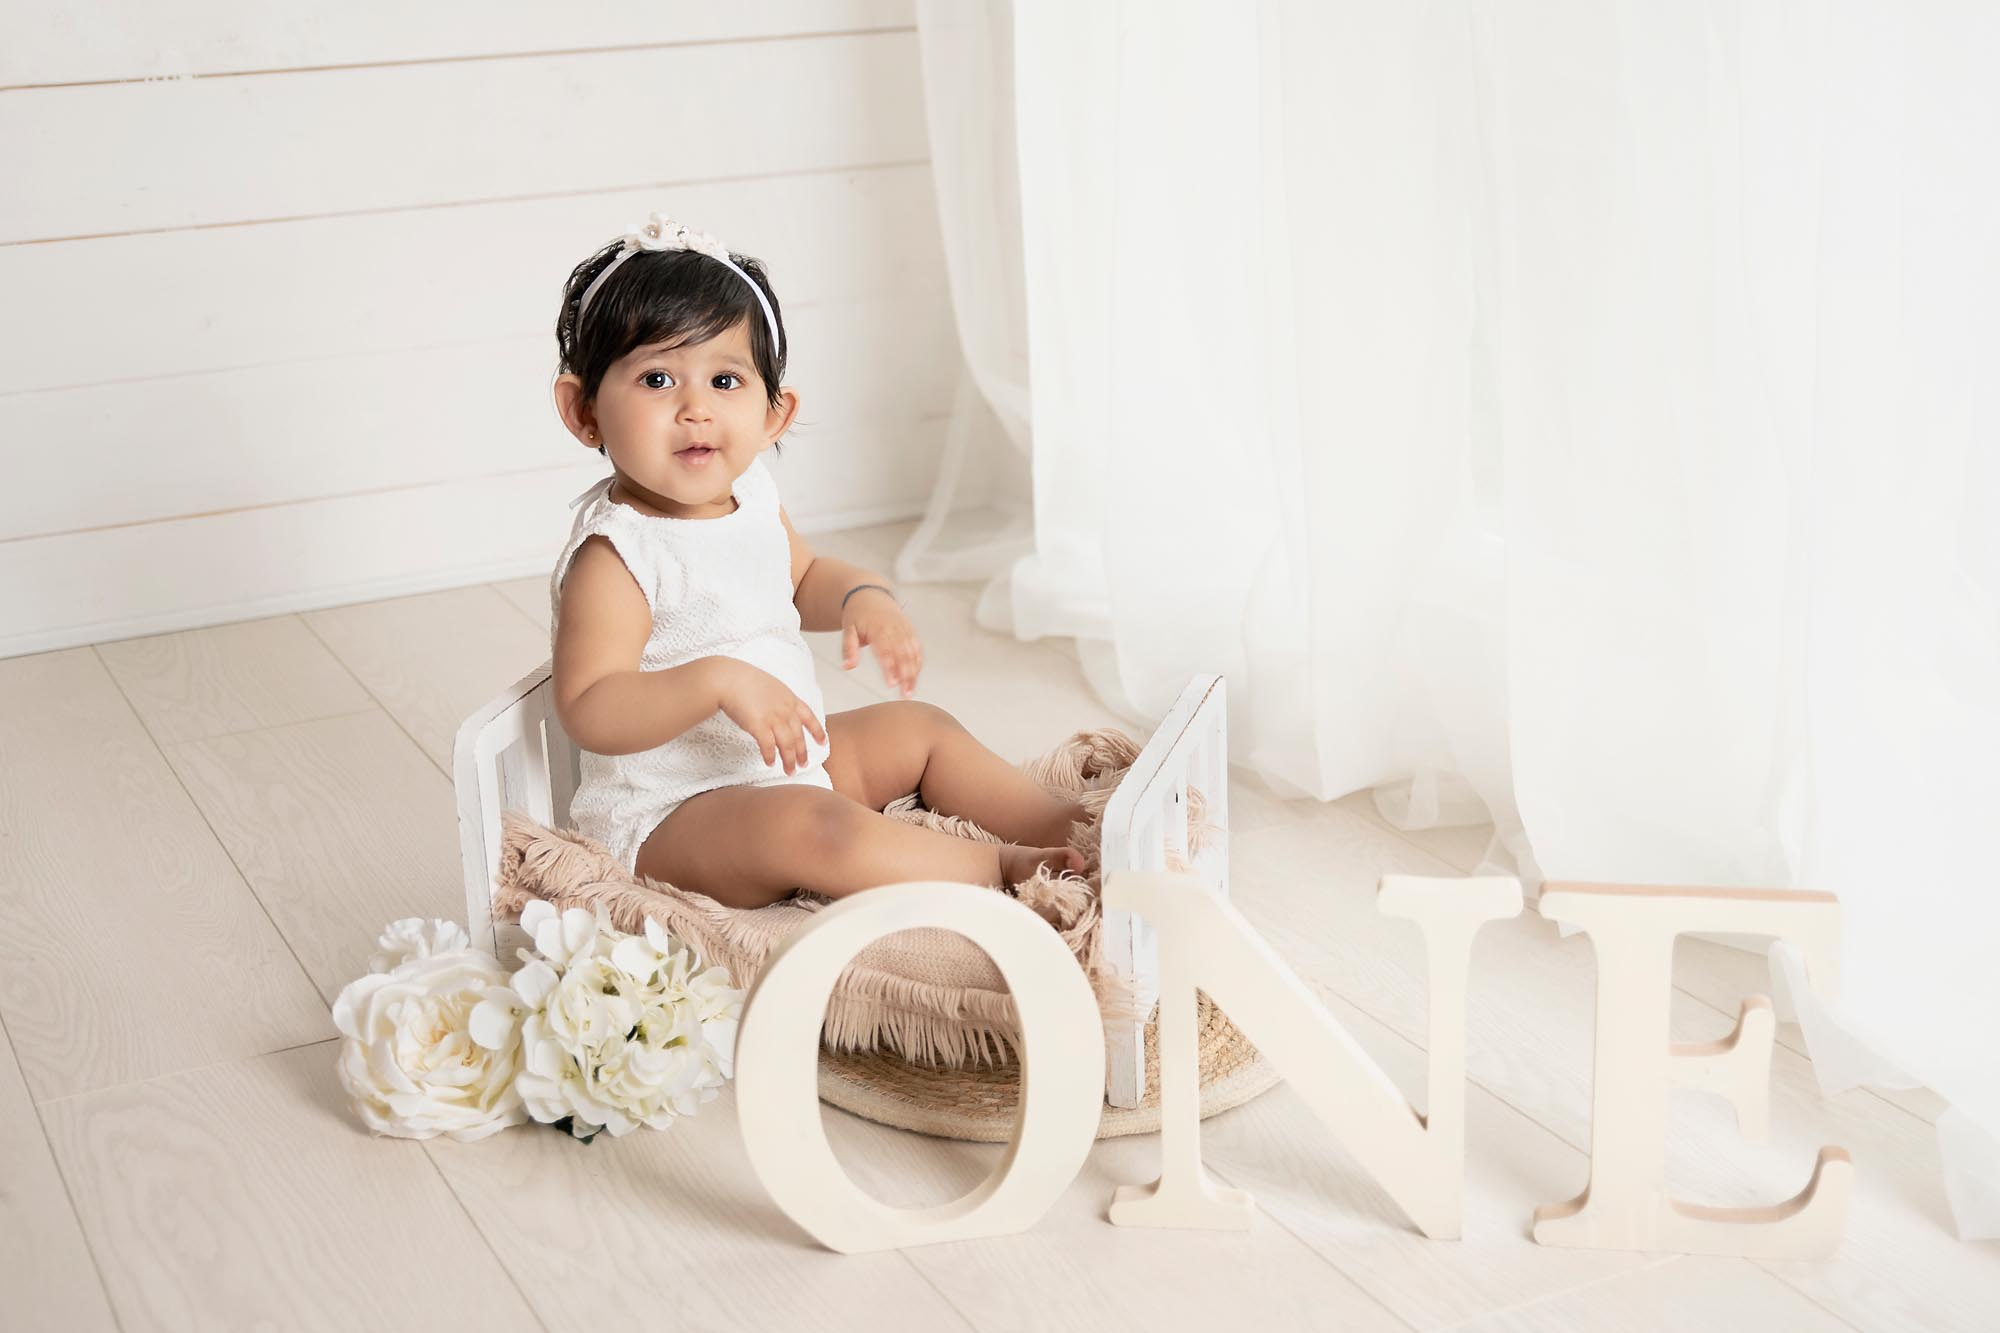 baby portrait in whit dress by the window taken by baby photography Manchester